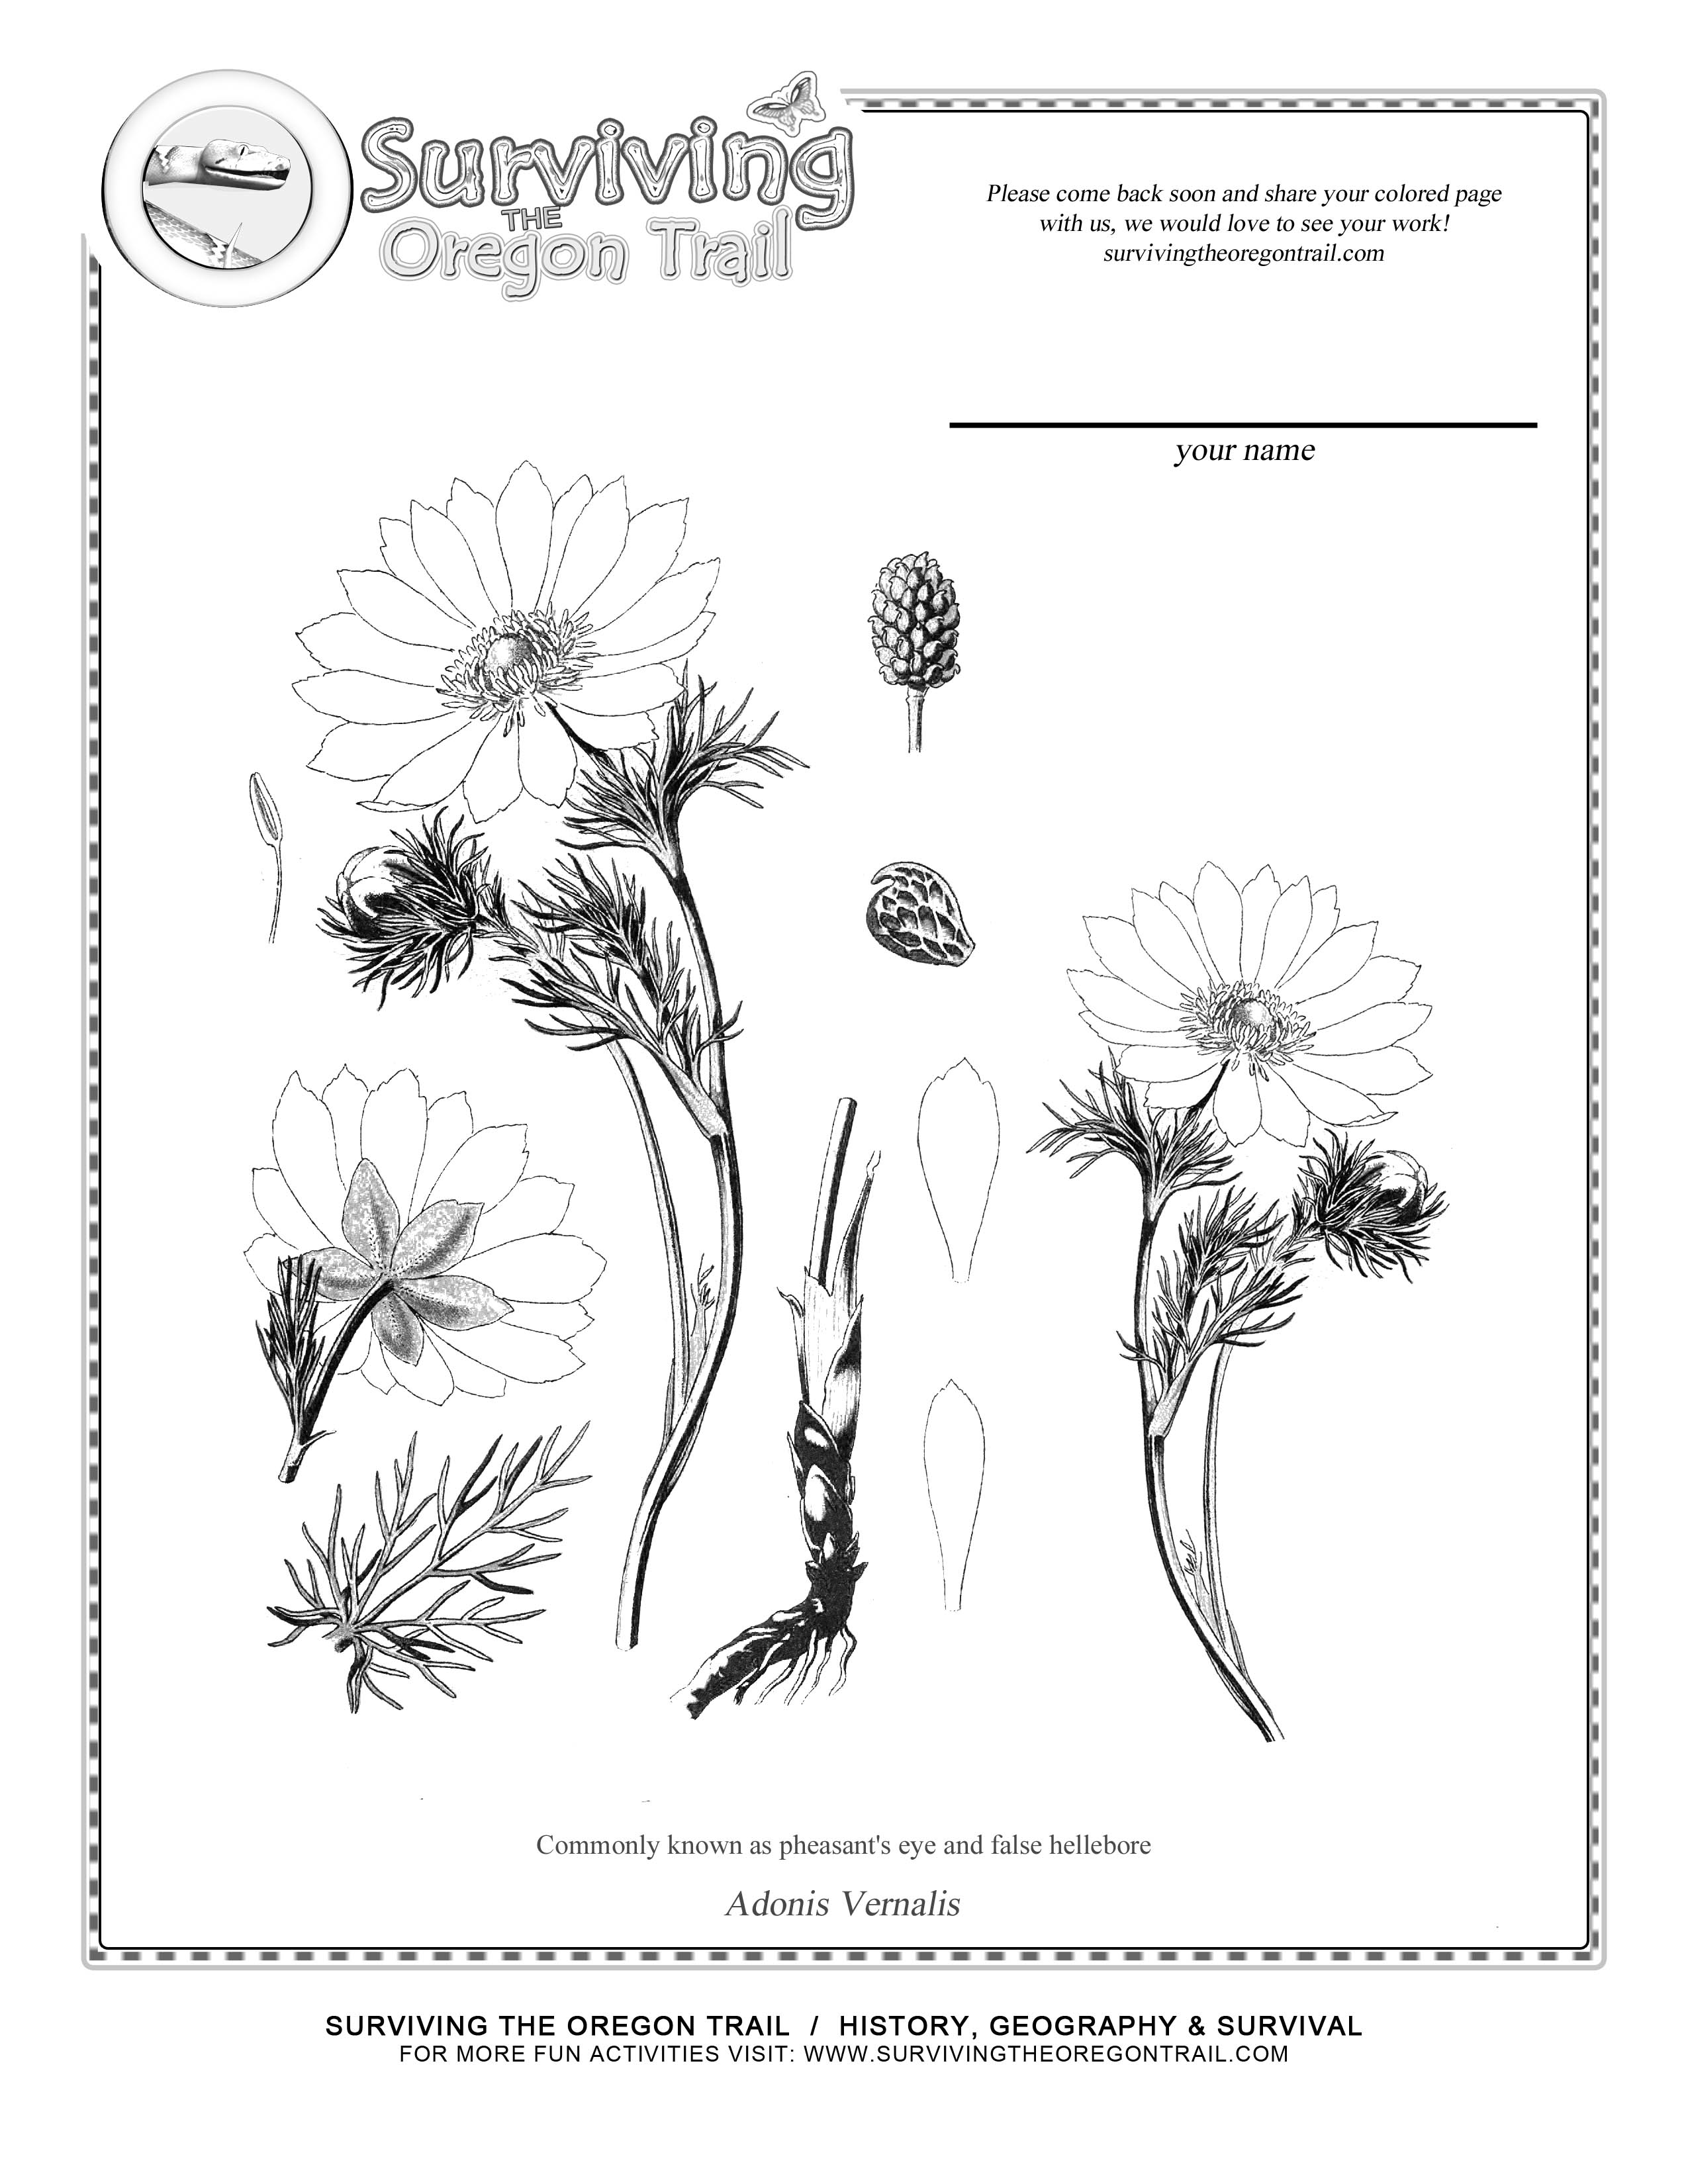 Free Coloring Page Of The Beautiful Adonis Vernalis Plant And Flower Commonly Known As Pheasants Eye False Hellebore Help Your Child Become More